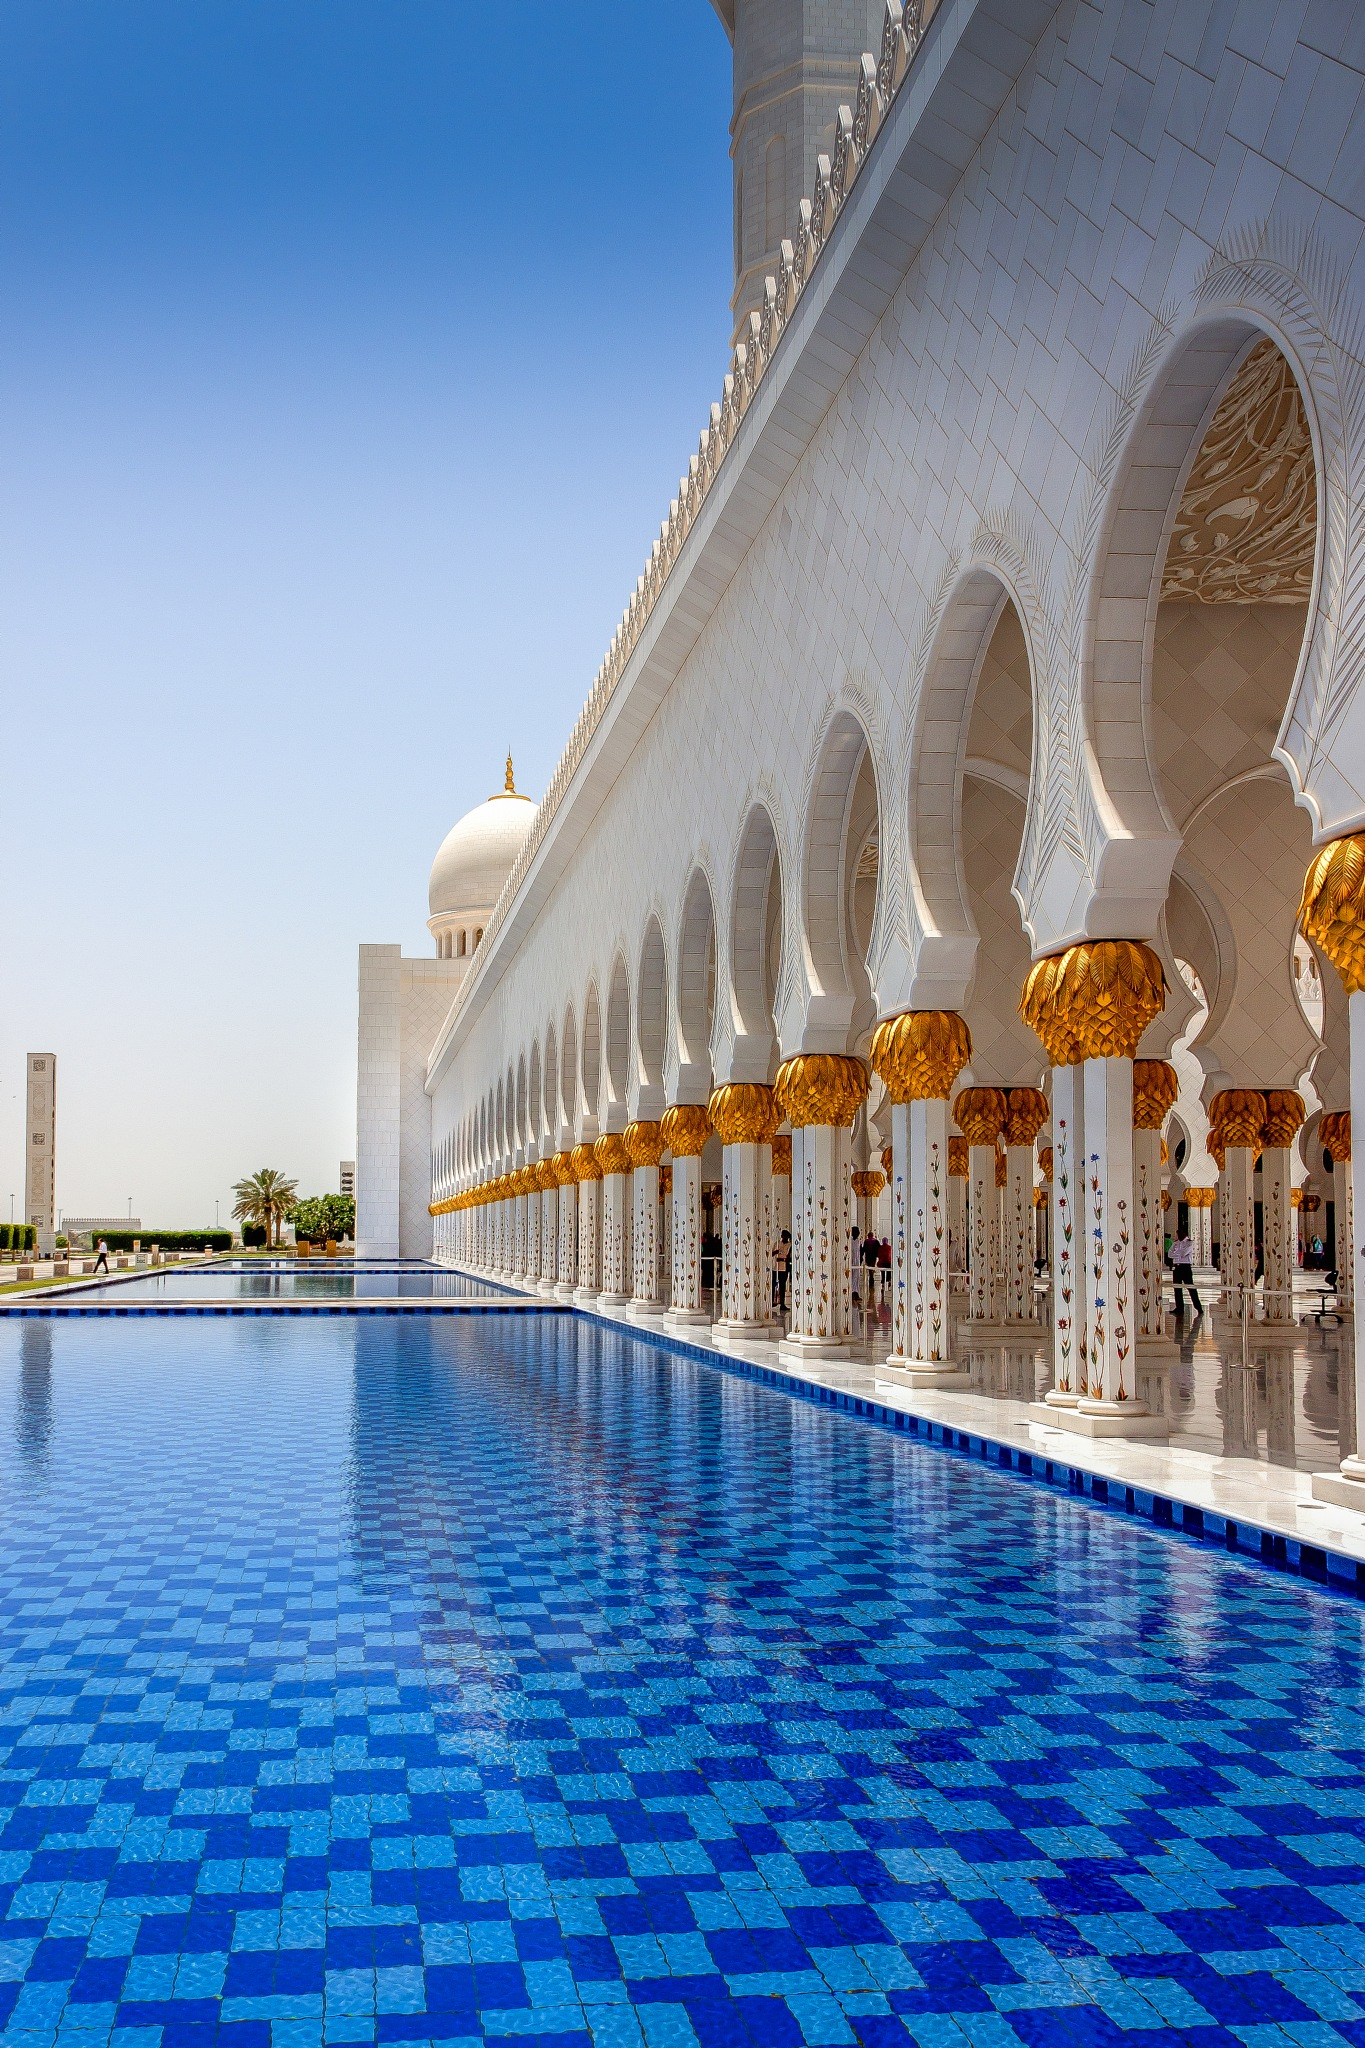 Sheikh Zayed mosque  by Mohamed gaafar